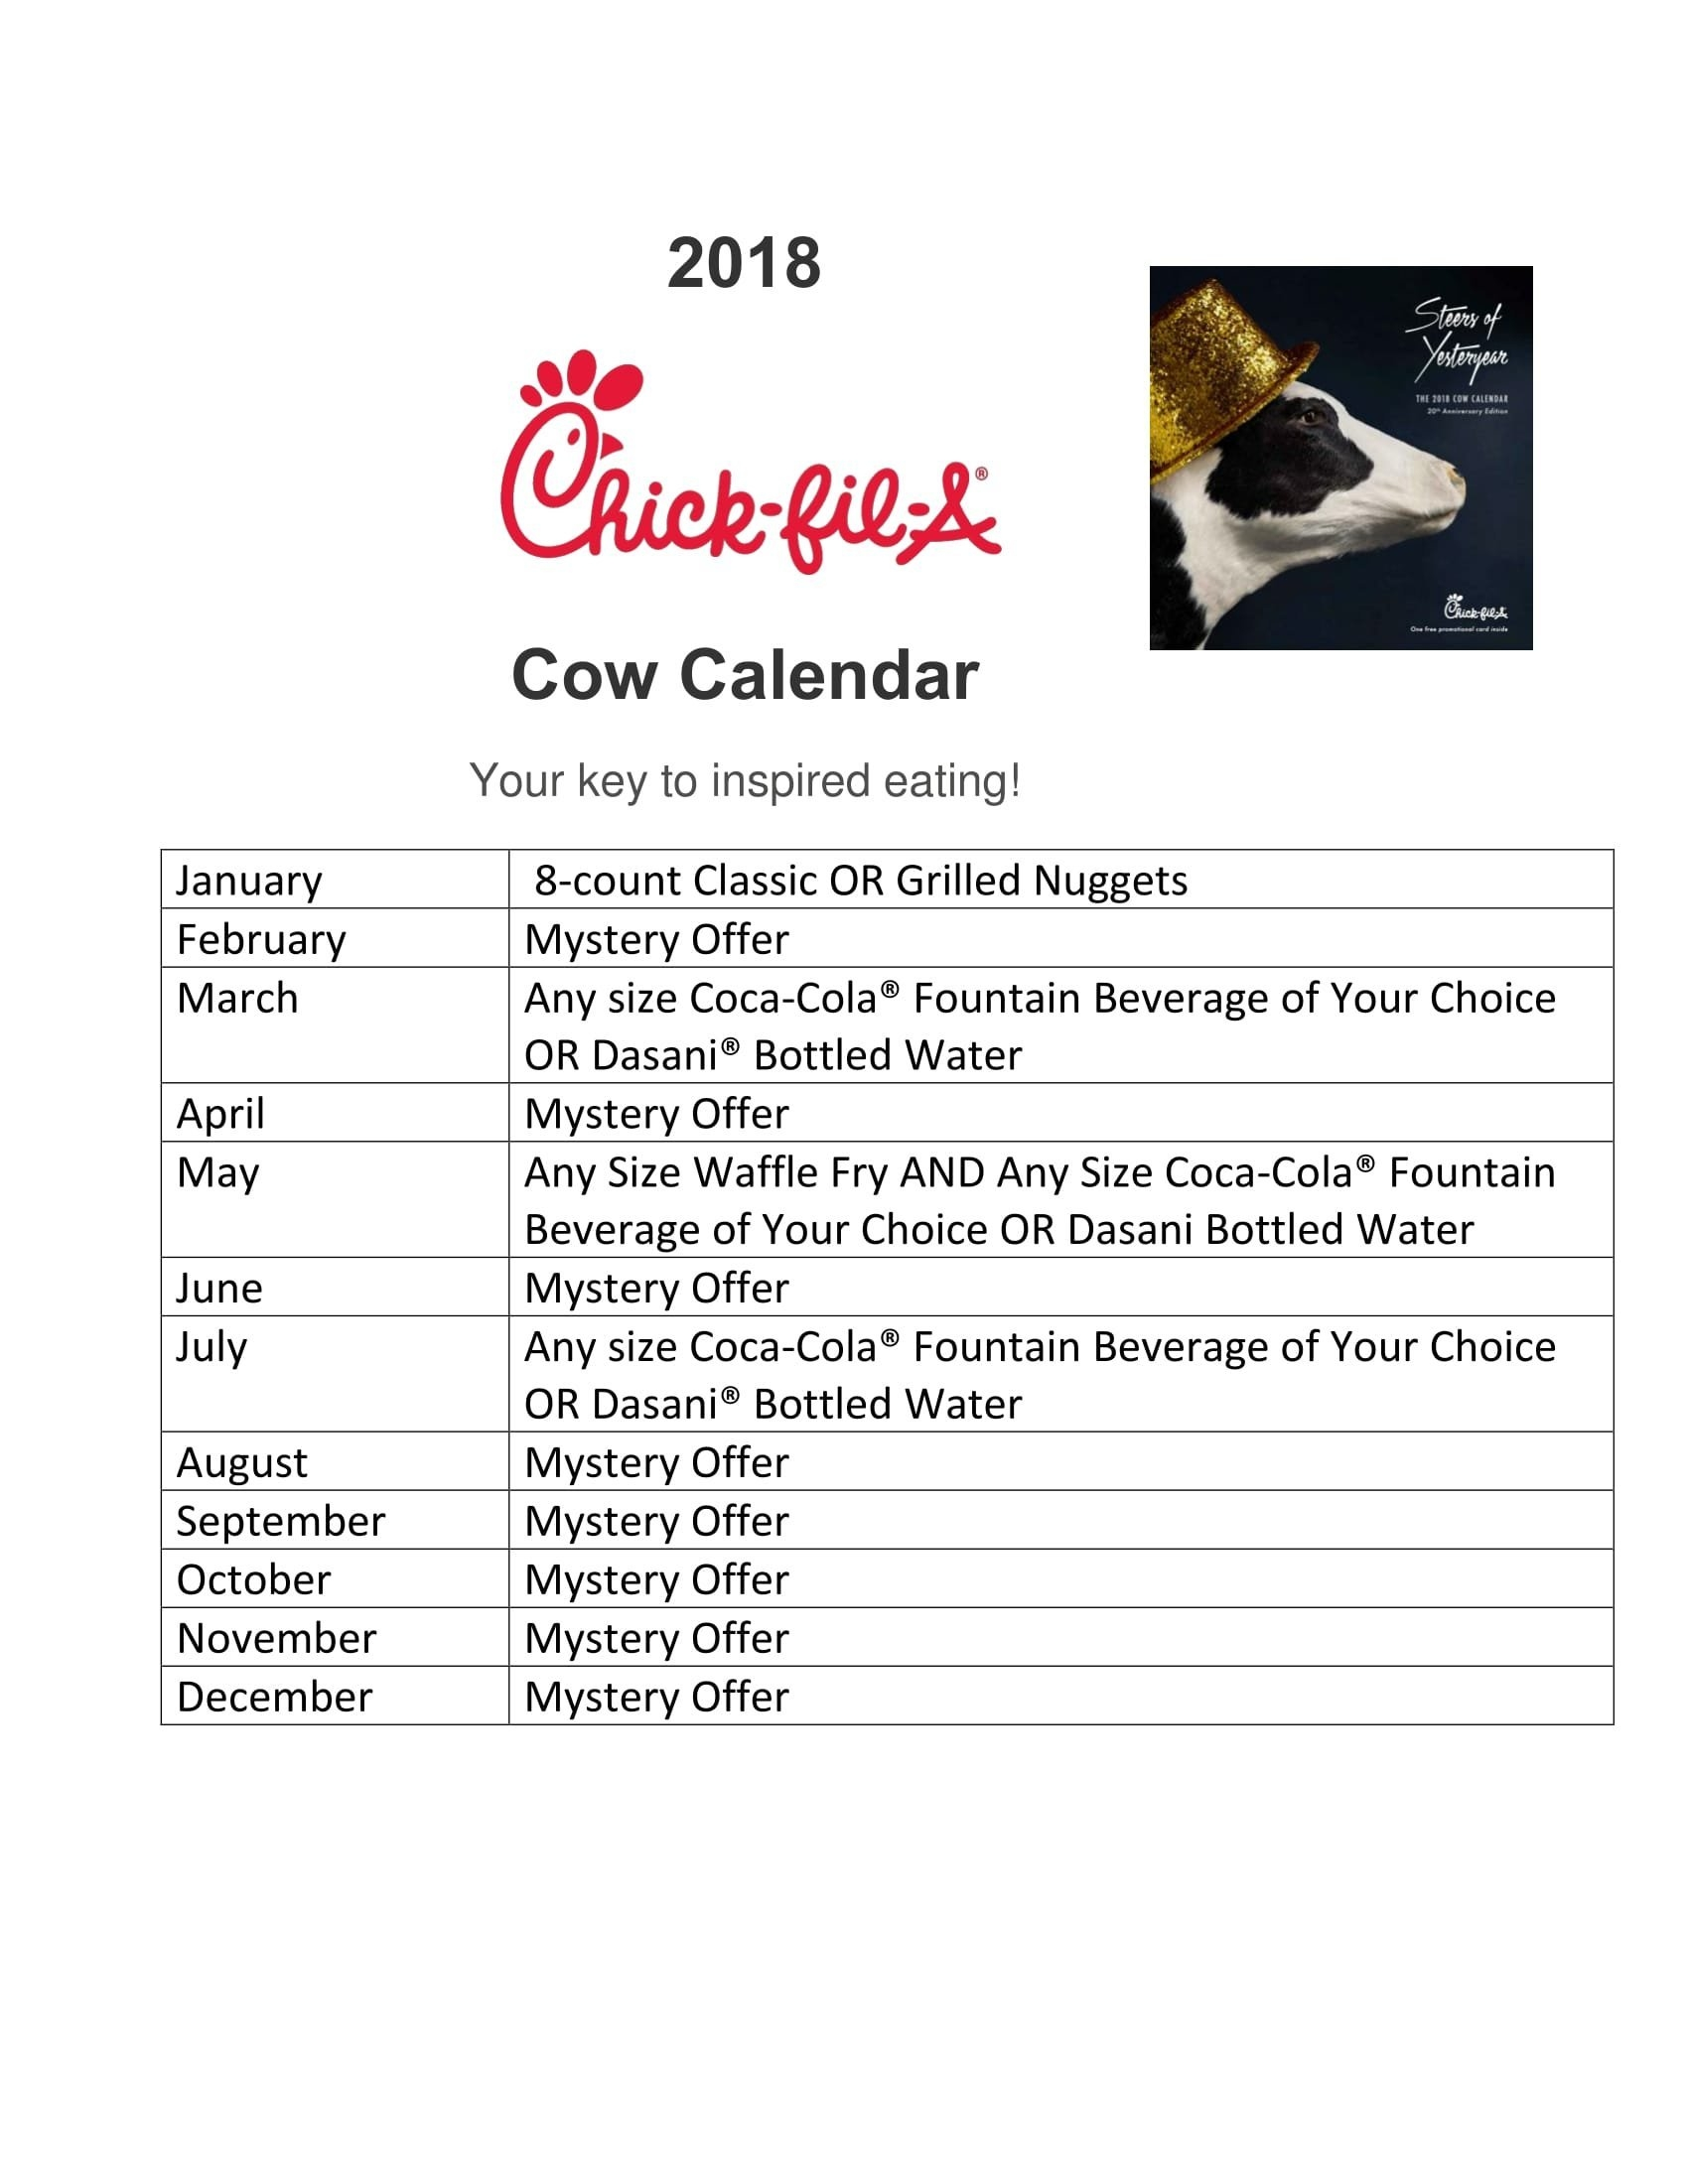 Cfa 2019 Calendar To Download Or Print | Americanwomanmag Chick Fil A Calendar 2019